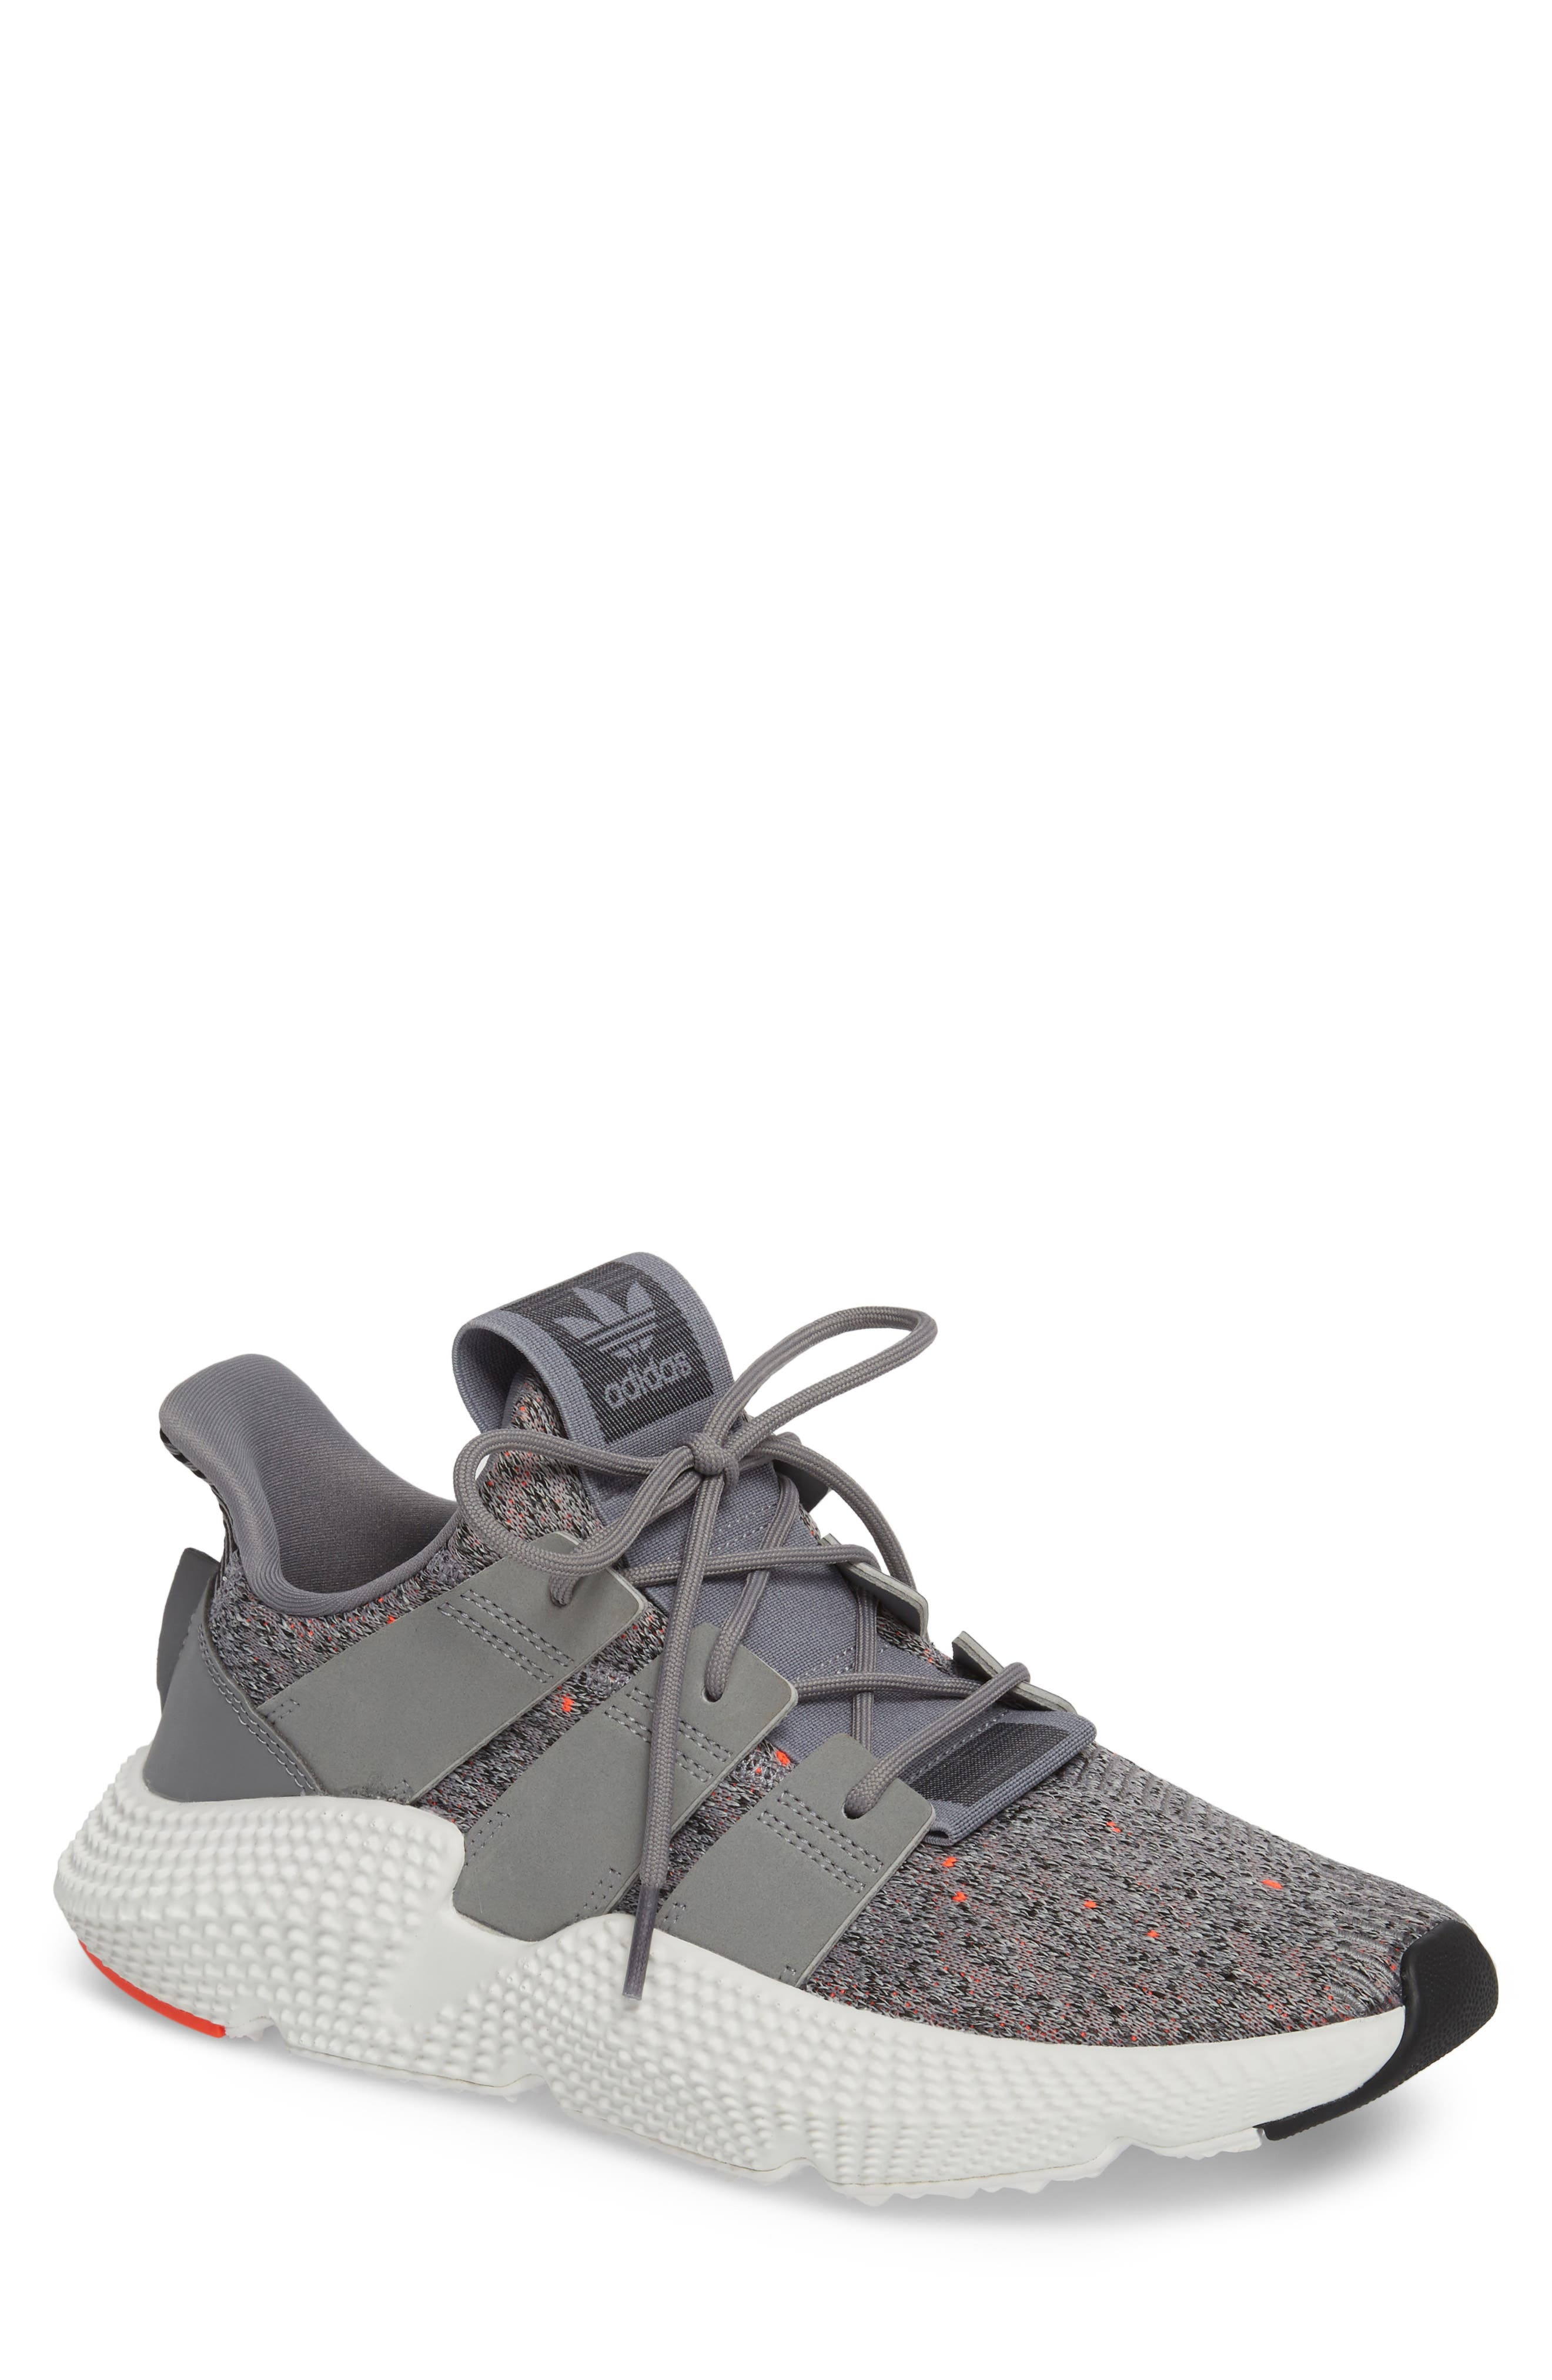 Prophere Sneaker,                         Main,                         color, GREY/ WHITE/ SOLAR RED